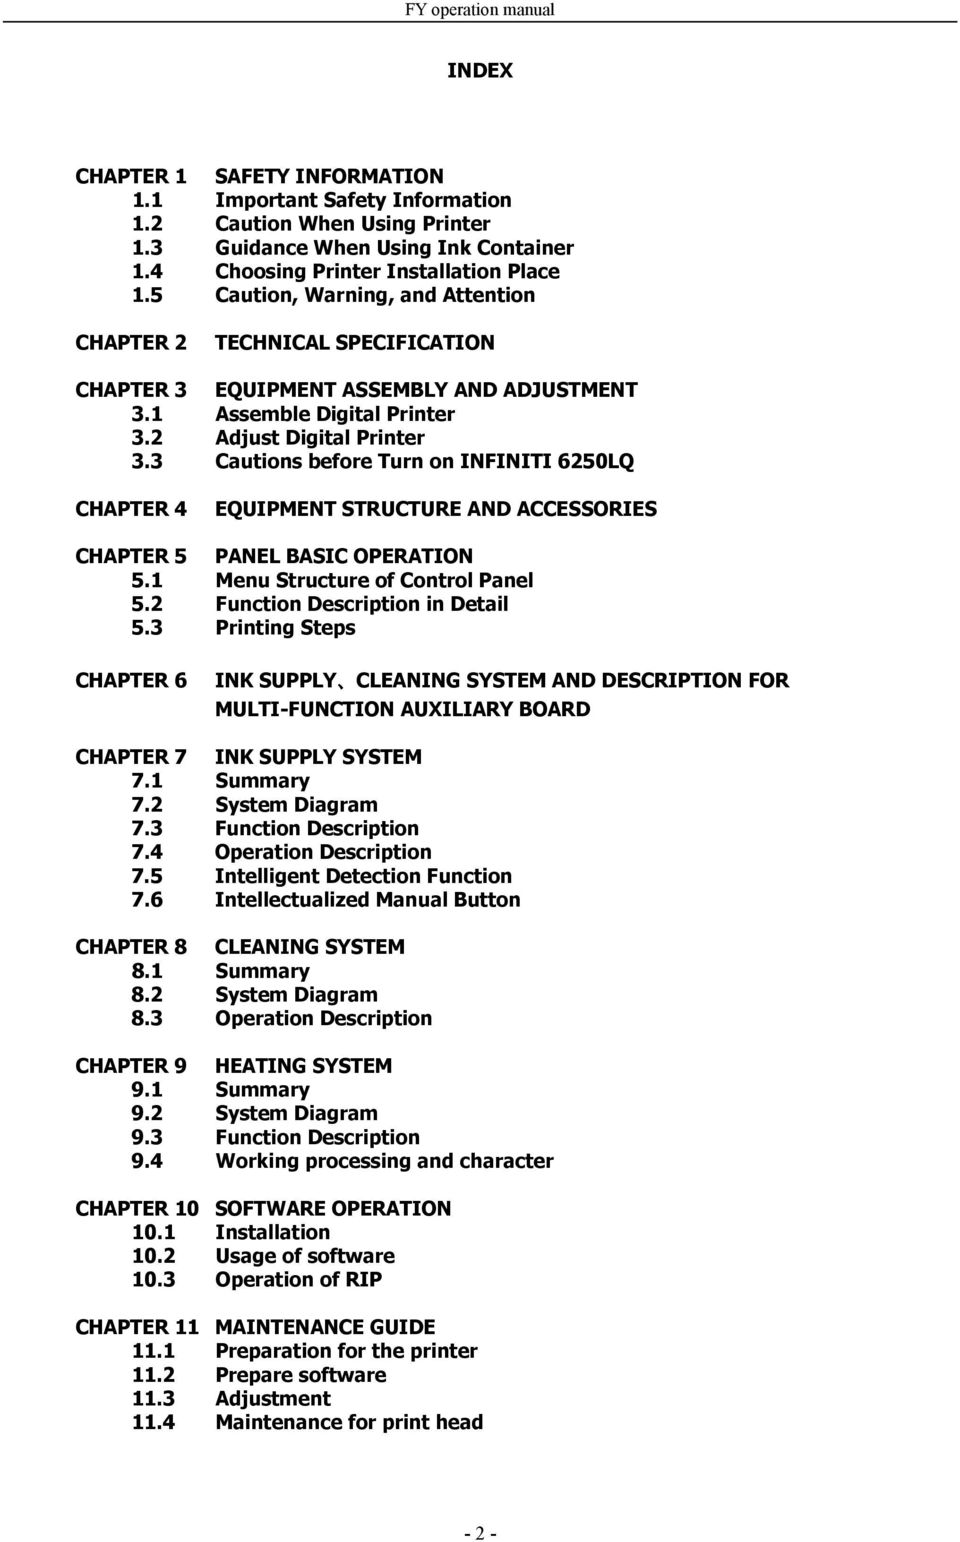 "3"" Cautions before Turn on INFINITI 6250LQ CHAPTER 4 EQUIPMENT STRUCTURE AND ACCESSORIES CHAPTER 5 PANEL BASIC OPERATION 5.1"" Menu Structure of Control Panel 5.2"" Function Description in Detail 5."